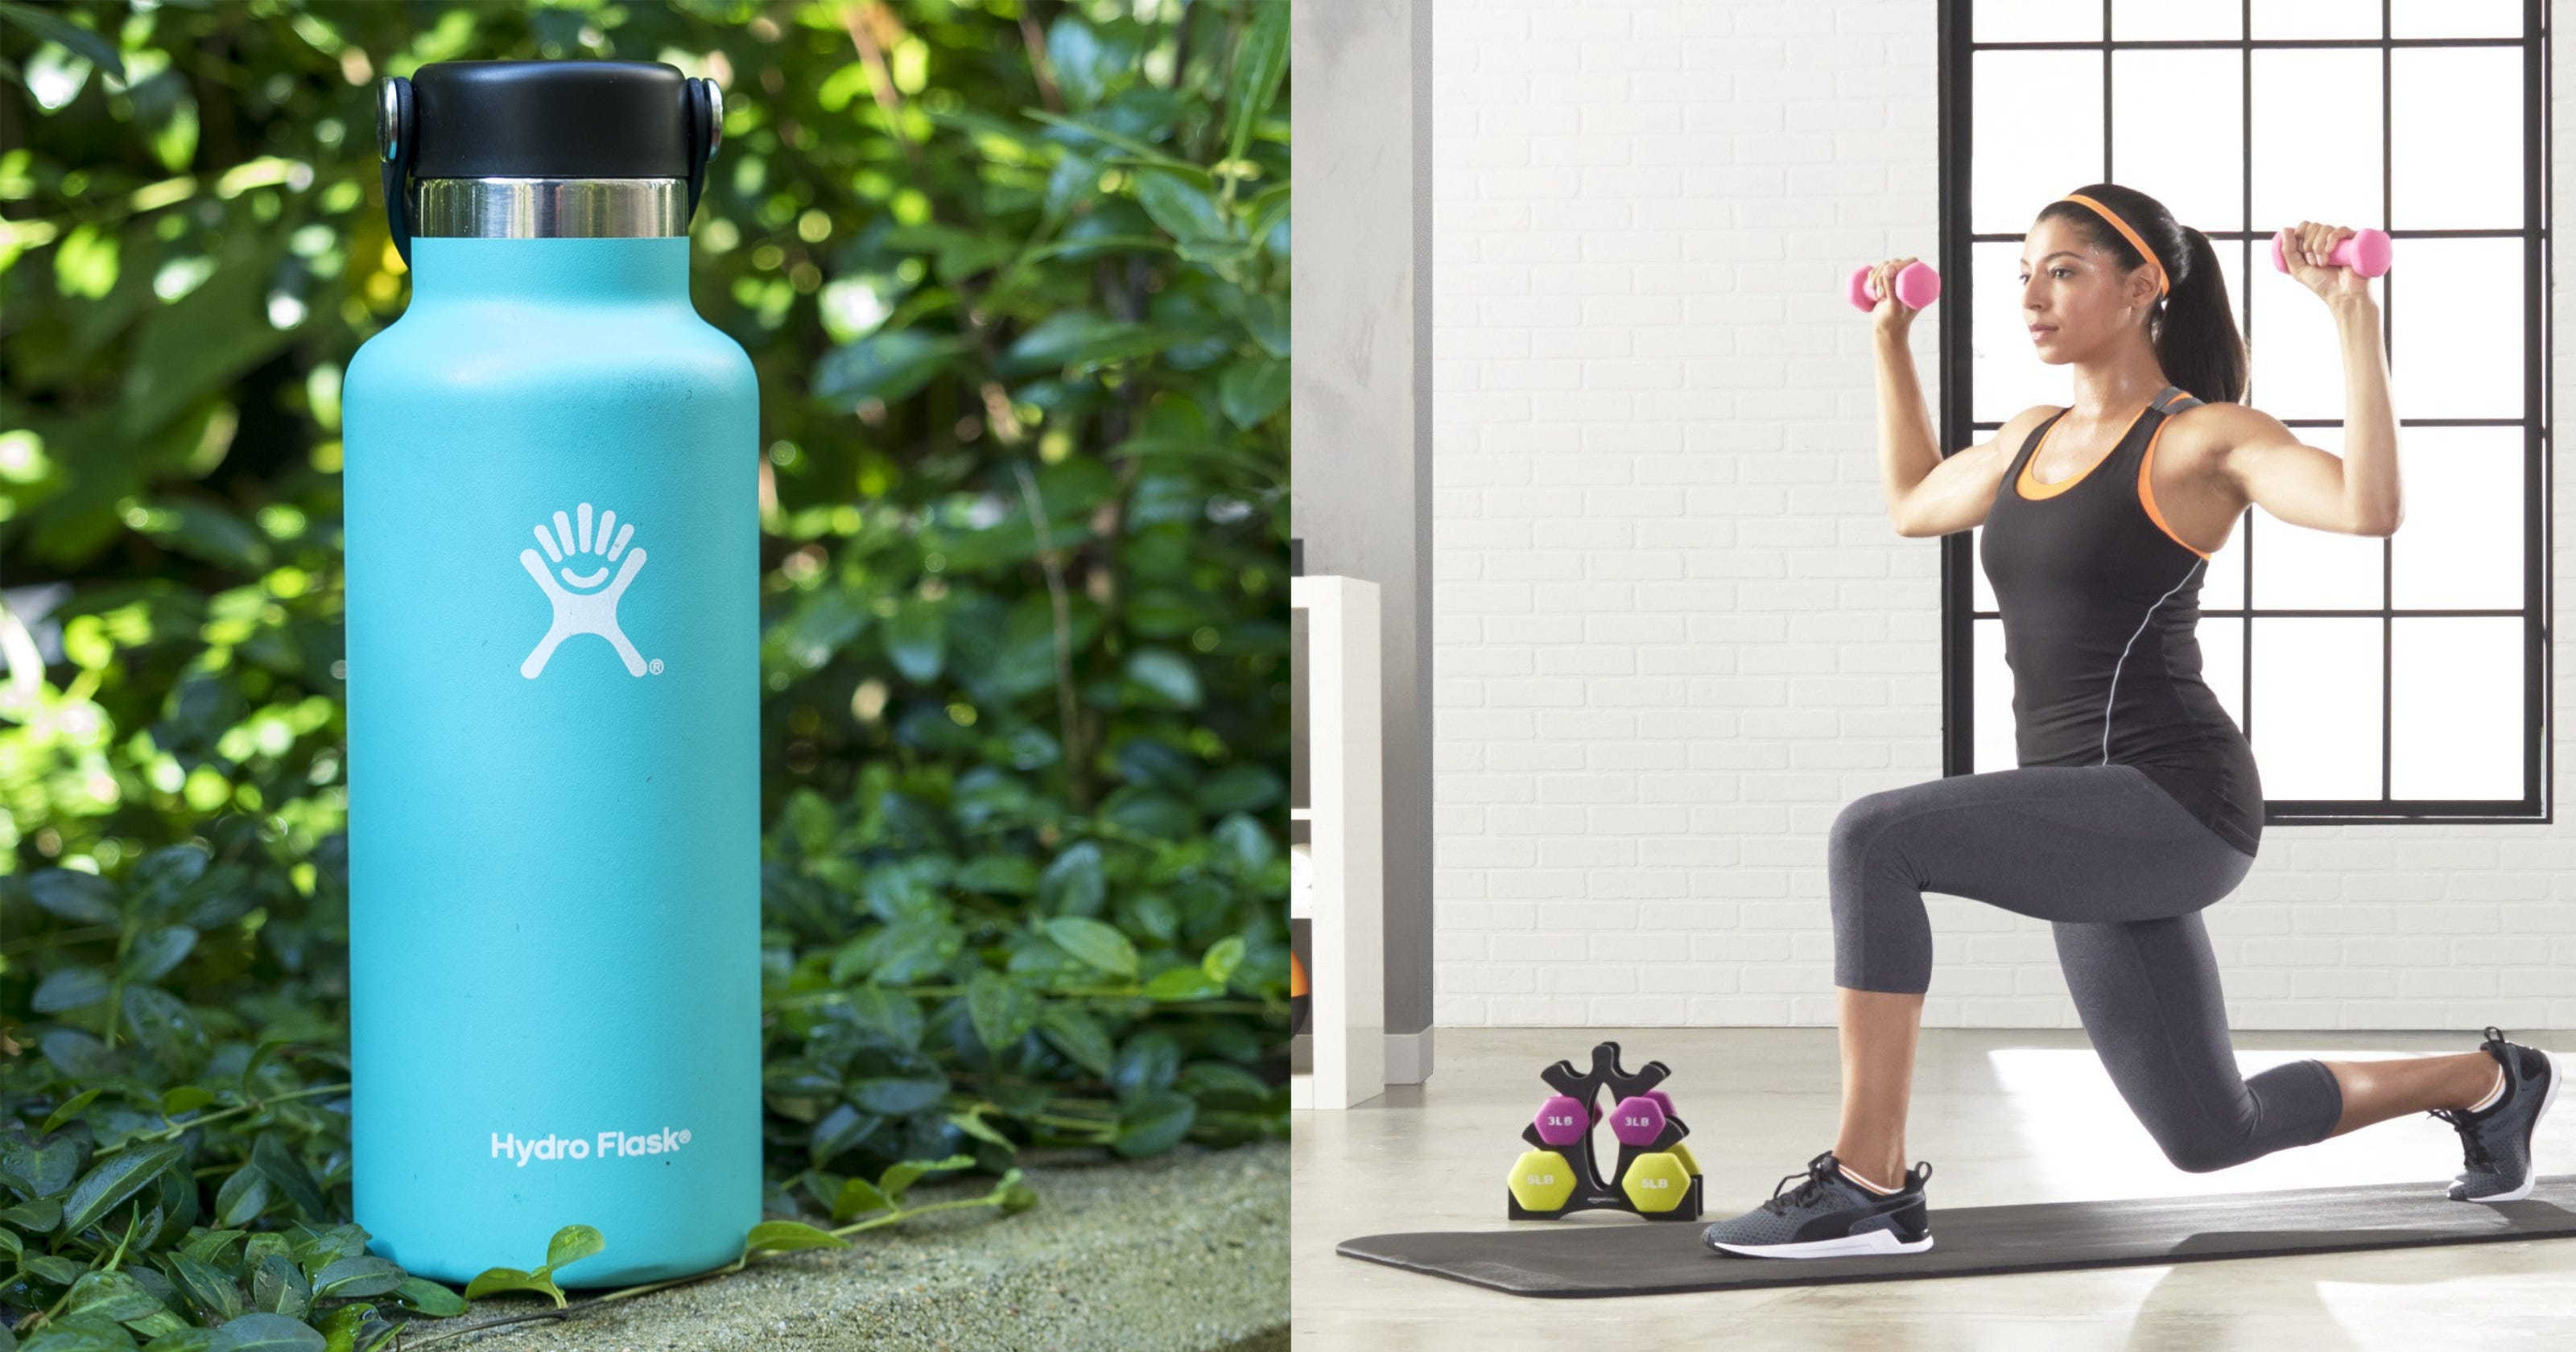 QnA VBage 20 fitness products with a cult following on Amazon that are totally worth it